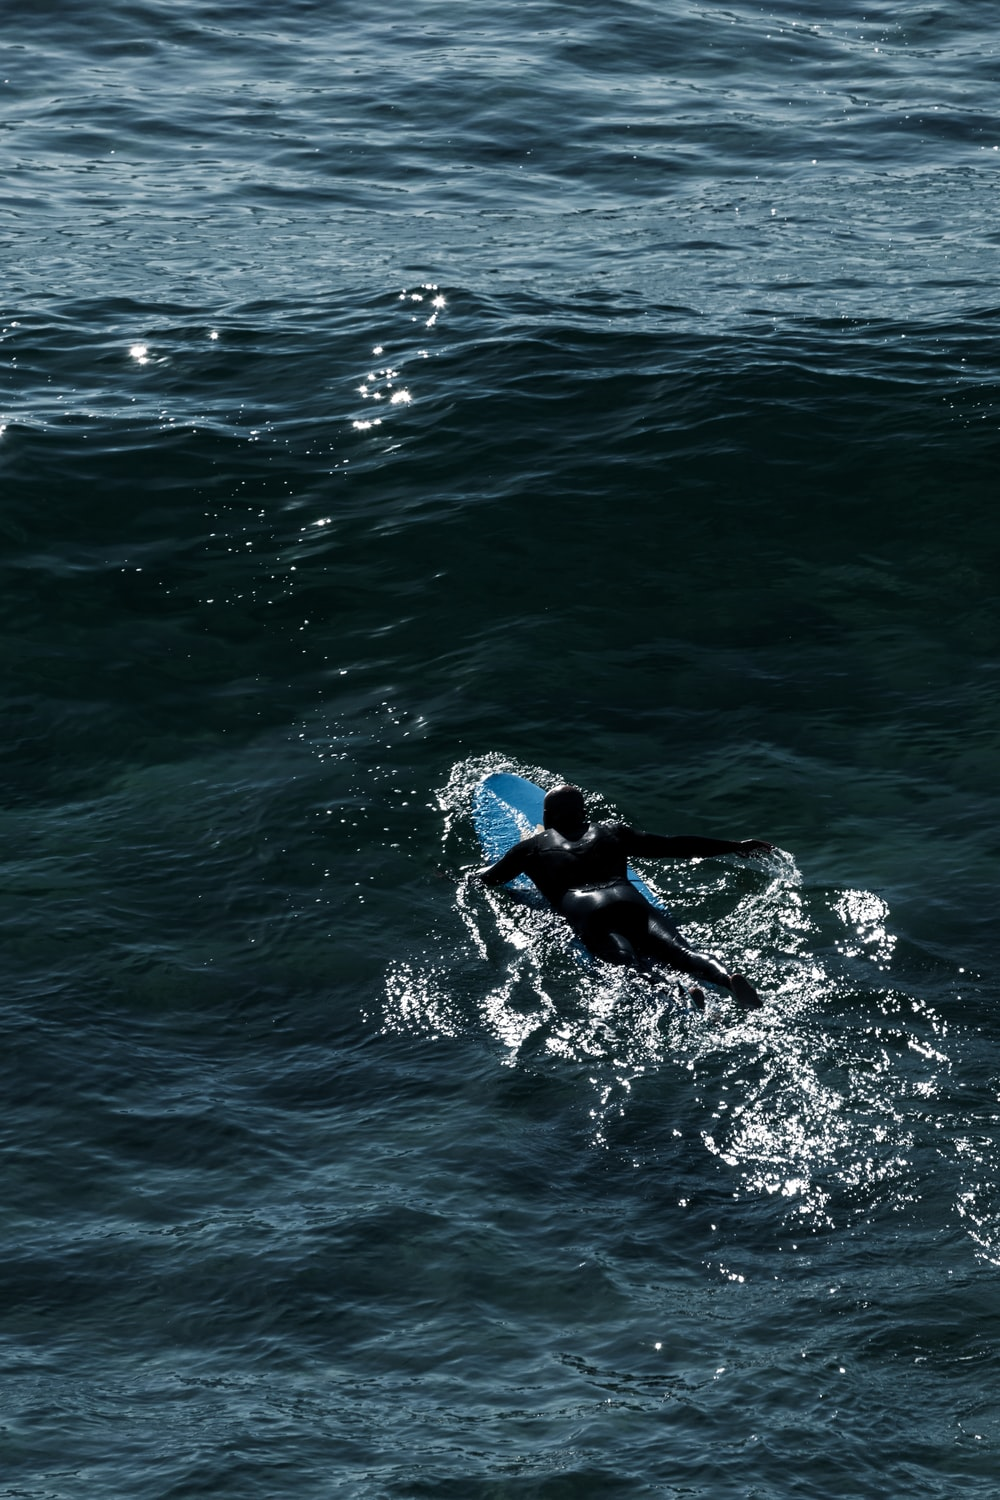 man in black wetsuit surfing on blue sea water during daytime